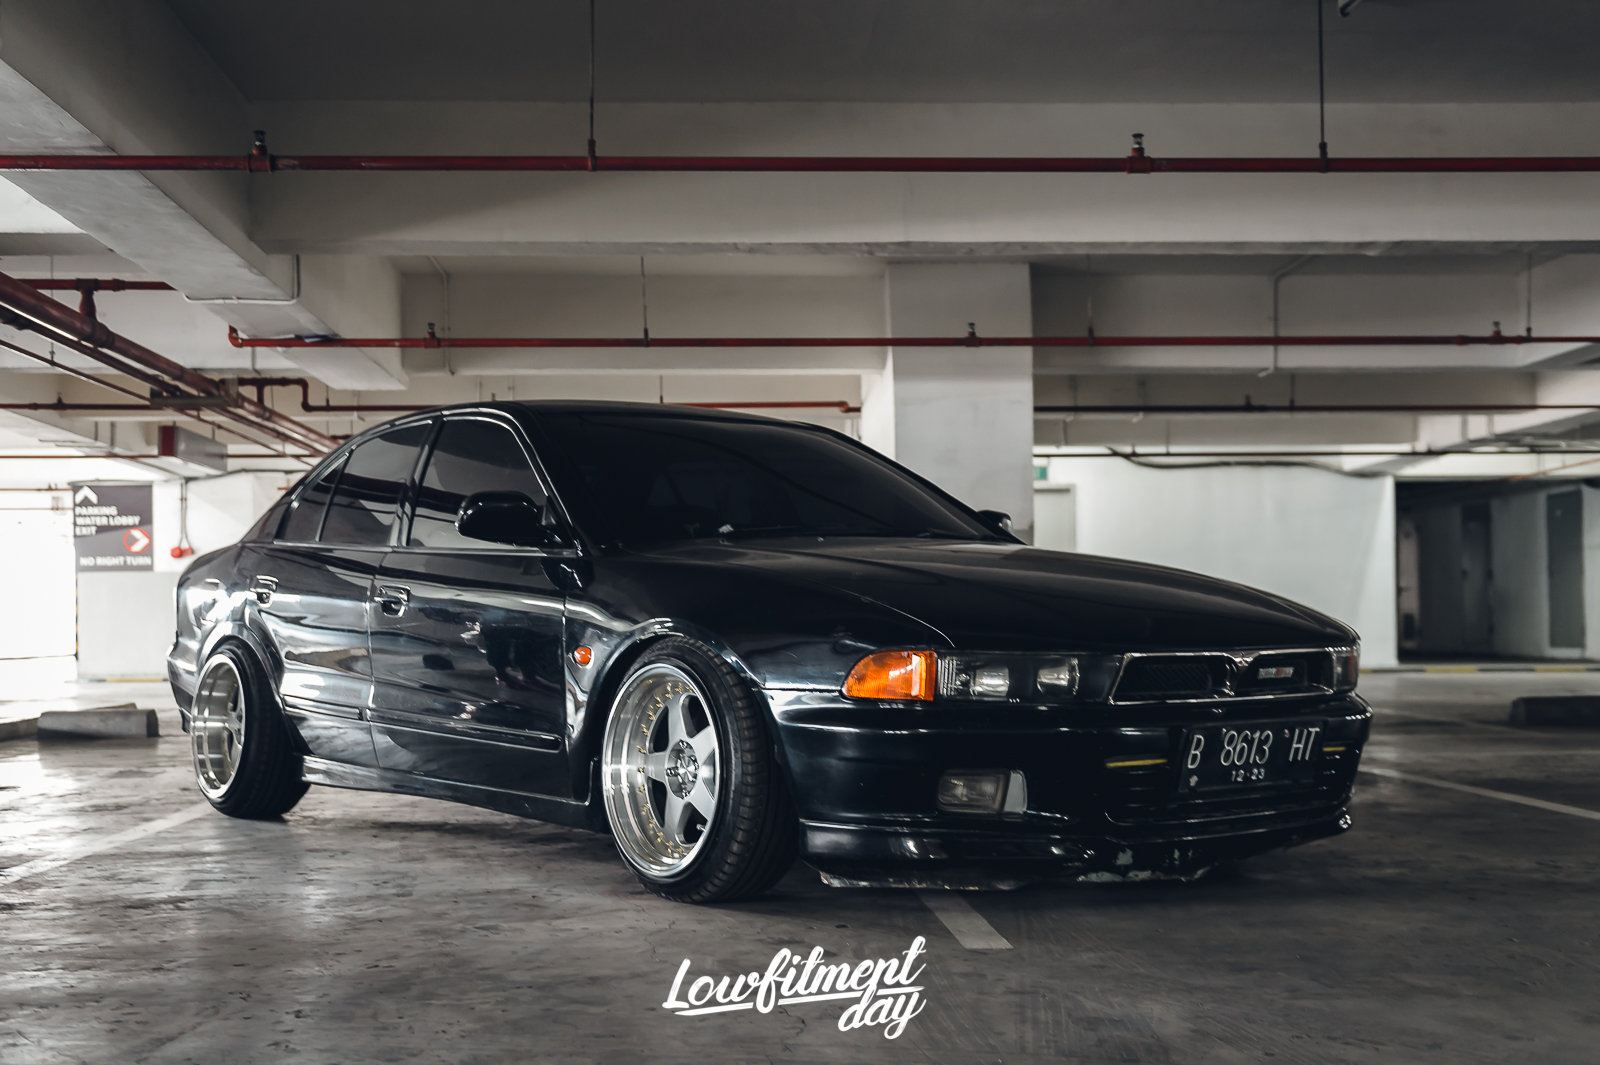 LOWFITMENT DAY 9